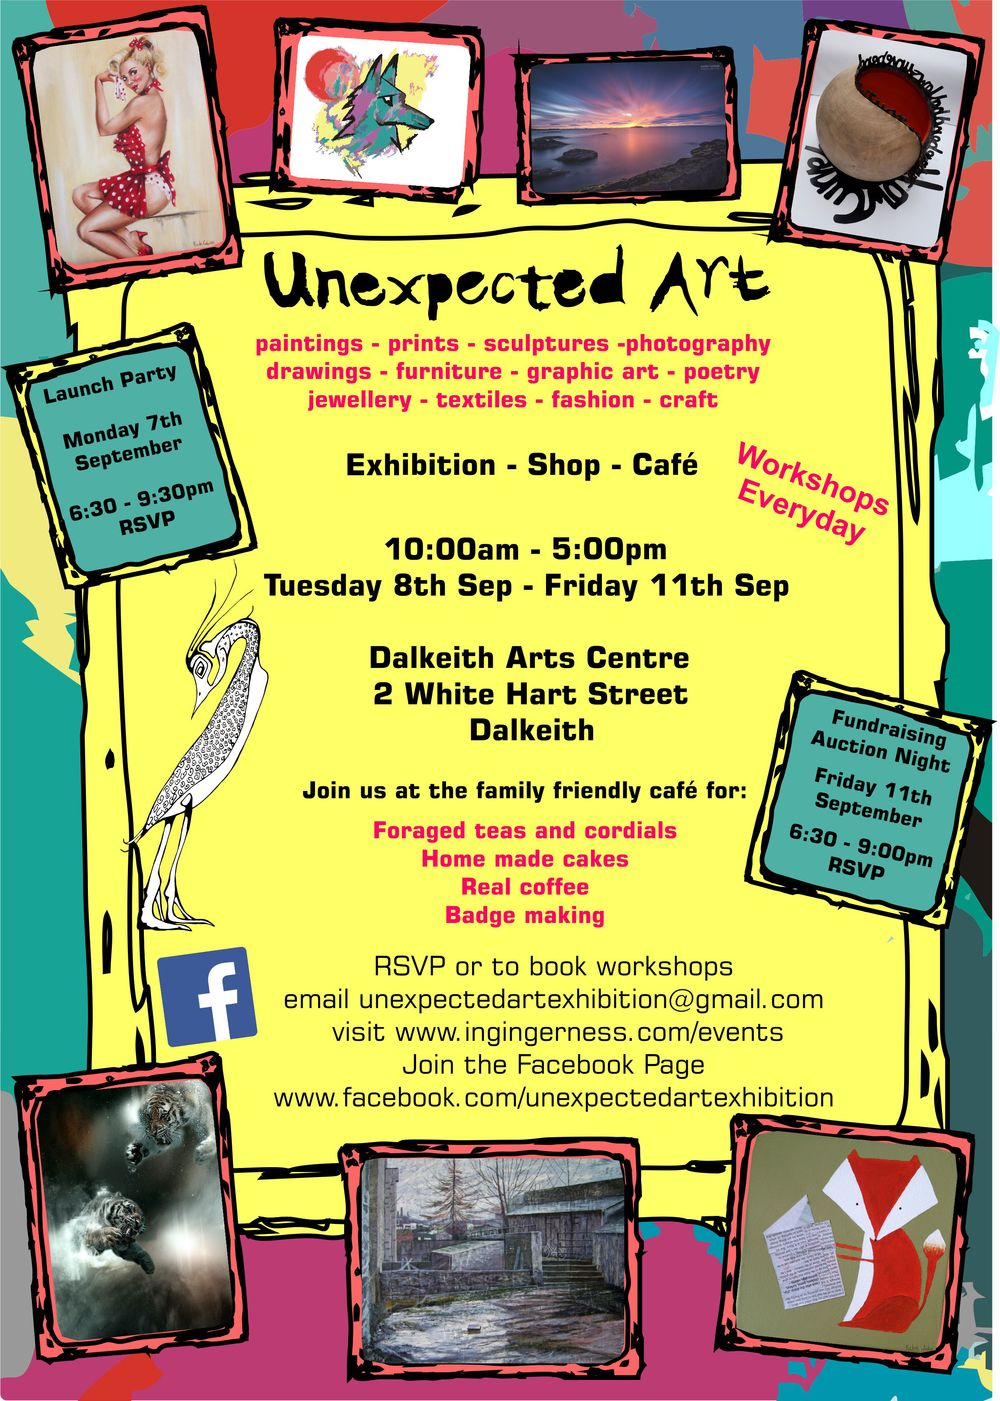 midfest-2015-Unexpected-Art-Exhibition